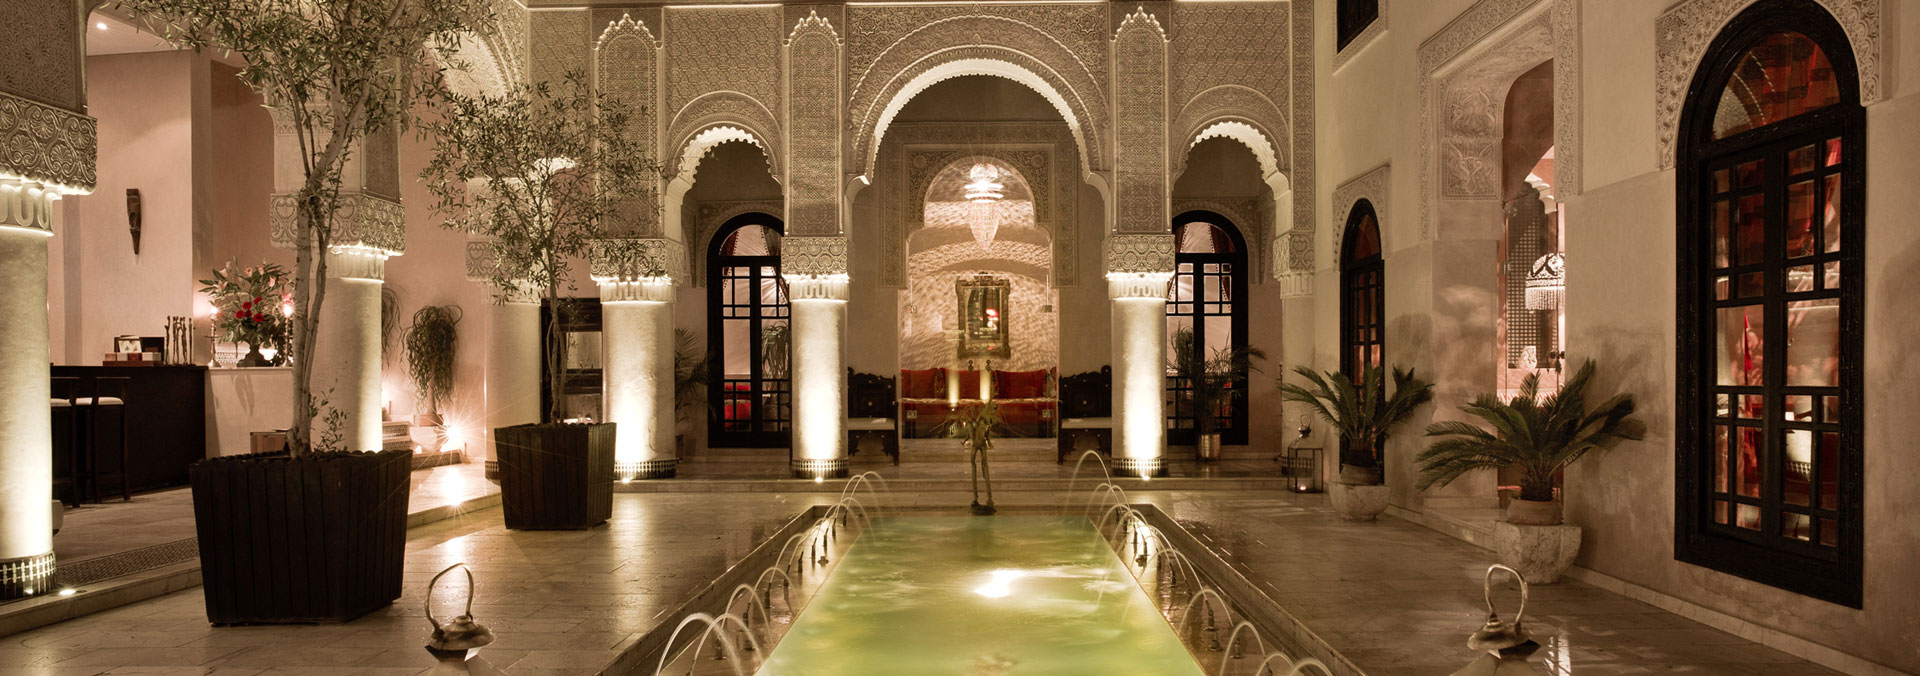 visit the medina of fez and explore the main sights of this imperial city